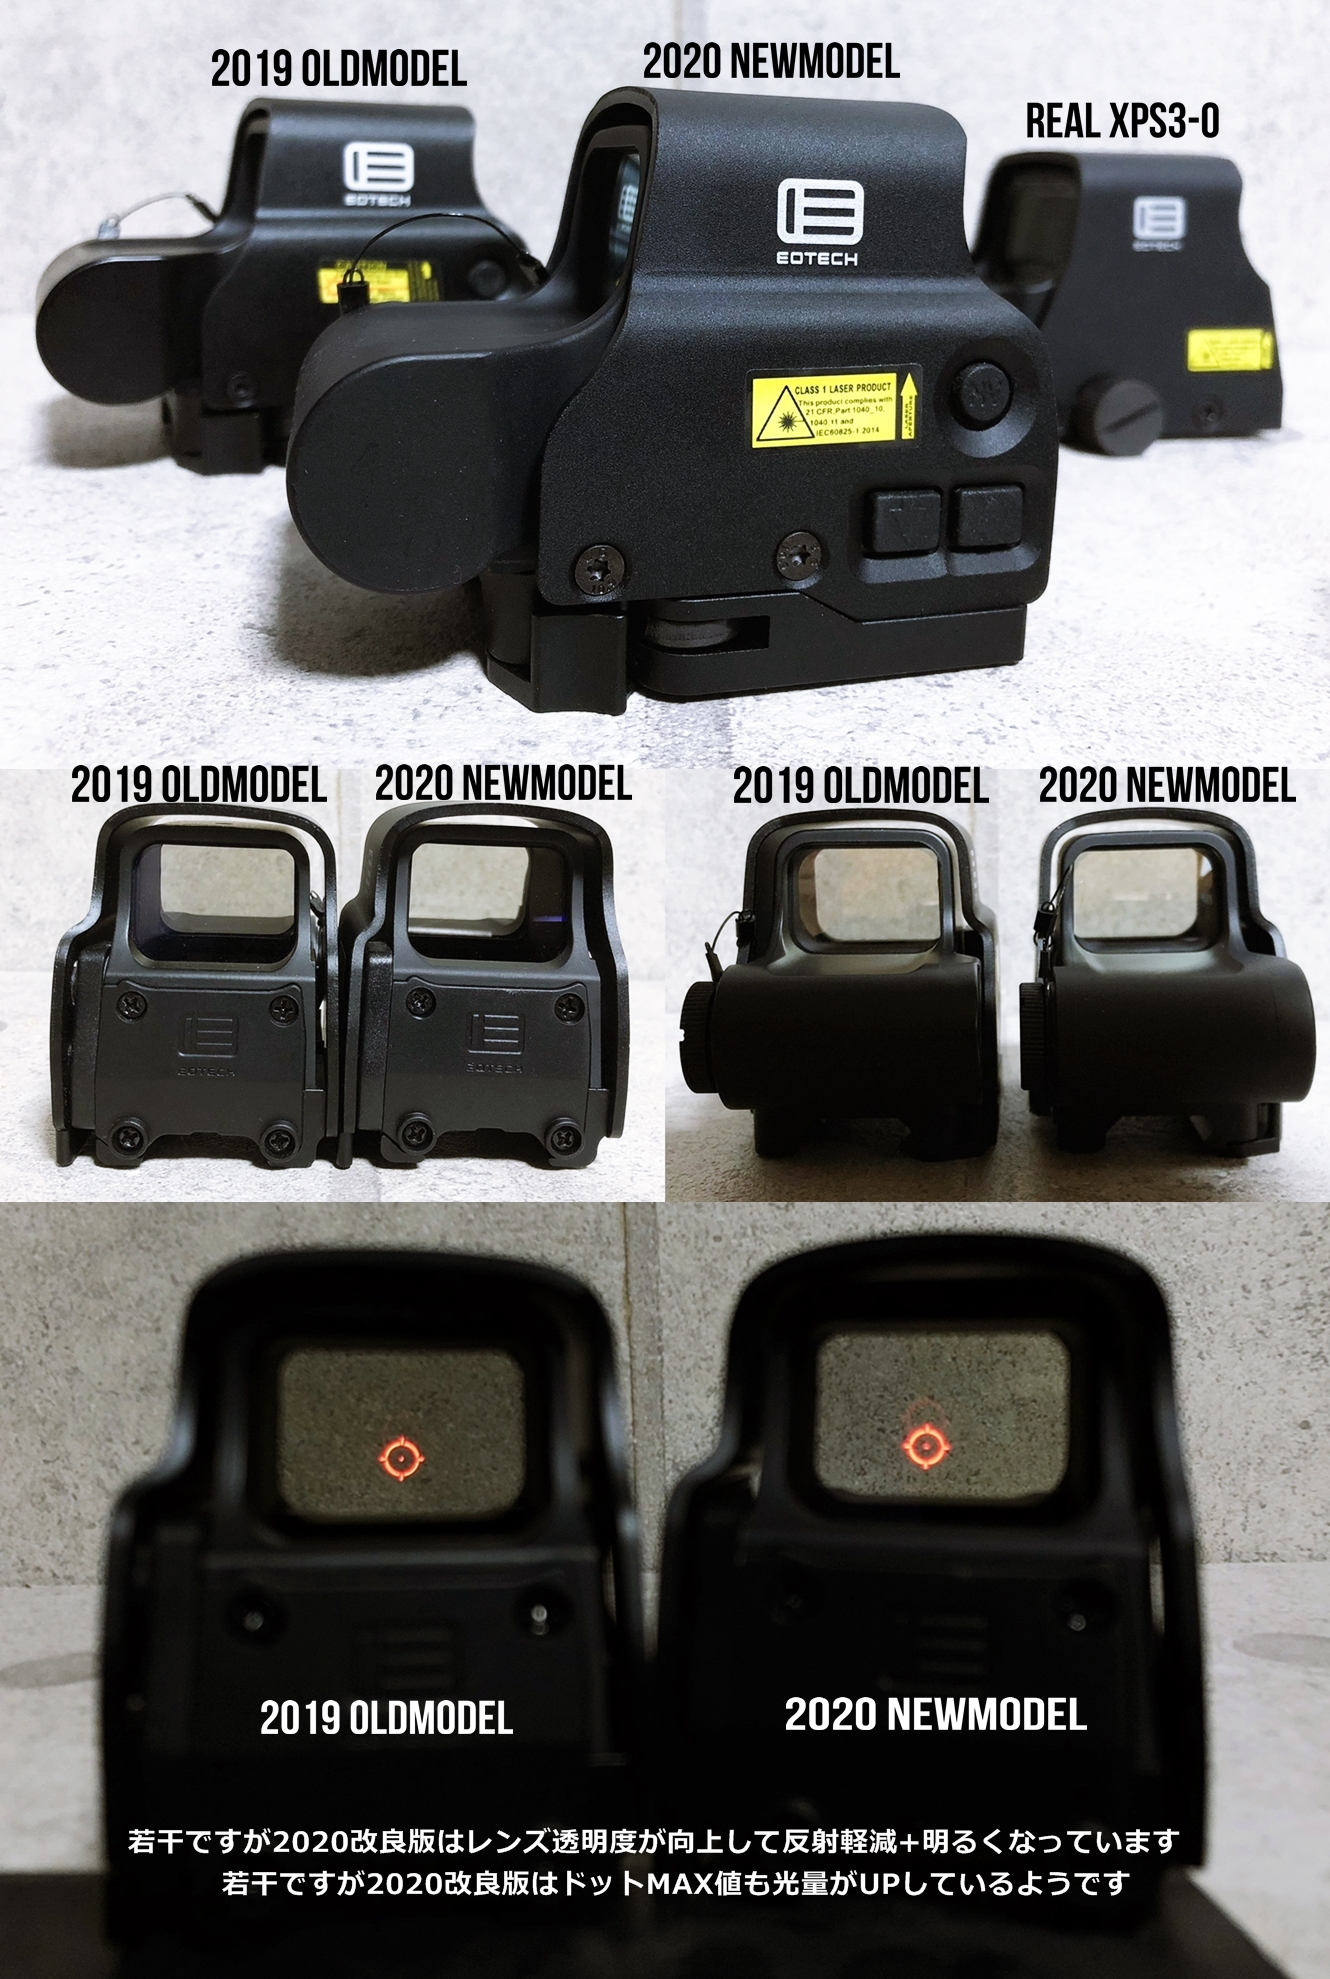 11 EVOLUTION GEAR 2020 改良版 EOTech EXPS3-0 NEW!! 最新リアルバージョンの改良点を徹底検証だ!! 新エボギア & 旧エボギア & 実物 イオテック ホロサイト!! 開封 比較 検証 取付 レビュー!!